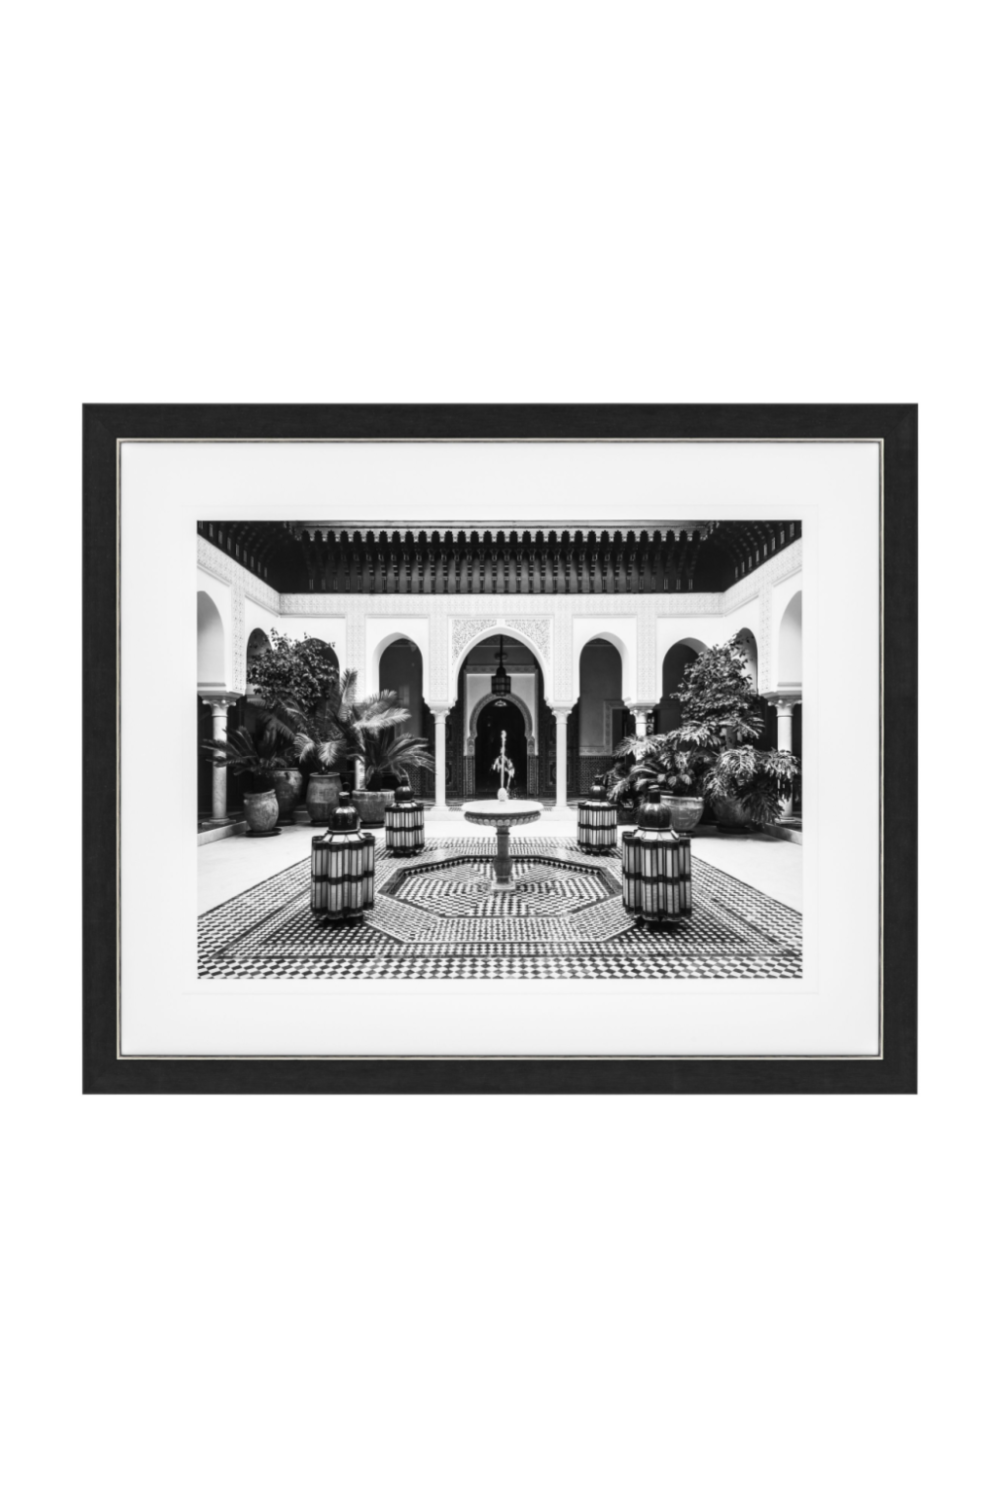 B&W Courtyard Print | Eichholtz Marrakech | Woodfurniture.com